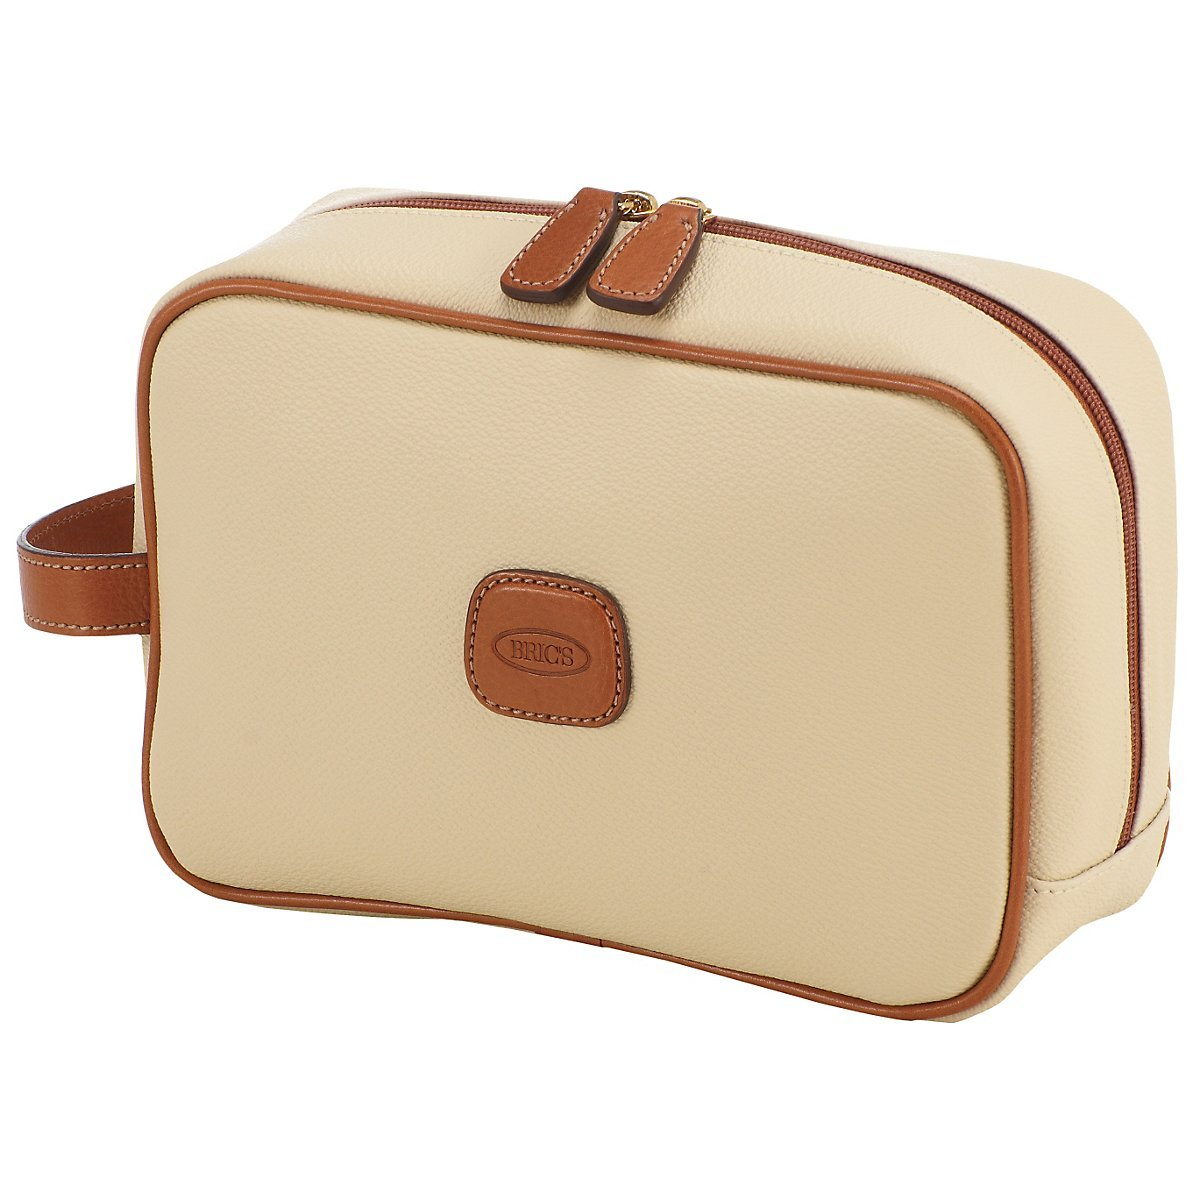 Bric's Bojola Traditional Shave Case (One Size, Cream) by Bric's